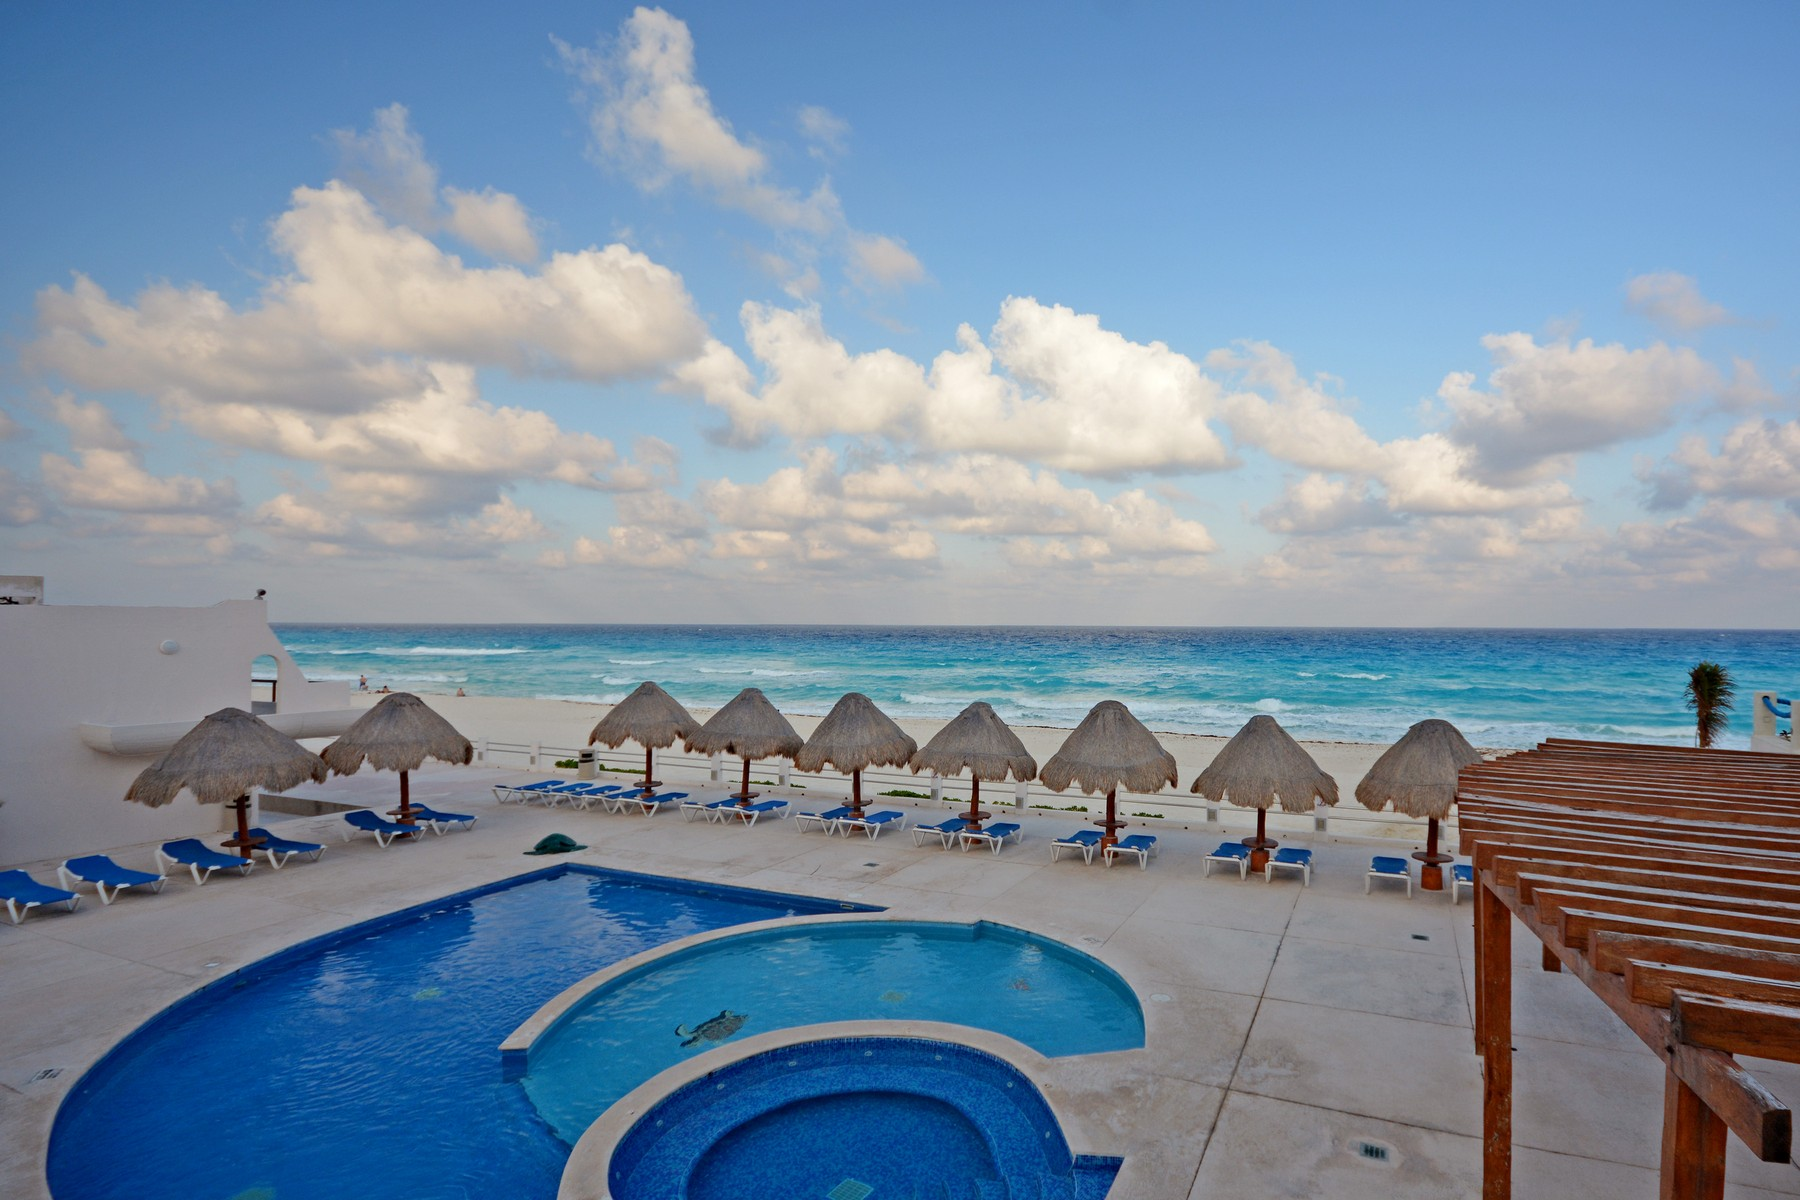 Condominium for Sale at CANCUN BEACHFRONT VILLA Condominio Villas Marlin Depto. 121, Lte. 23 Cancun, 77500 Mexico